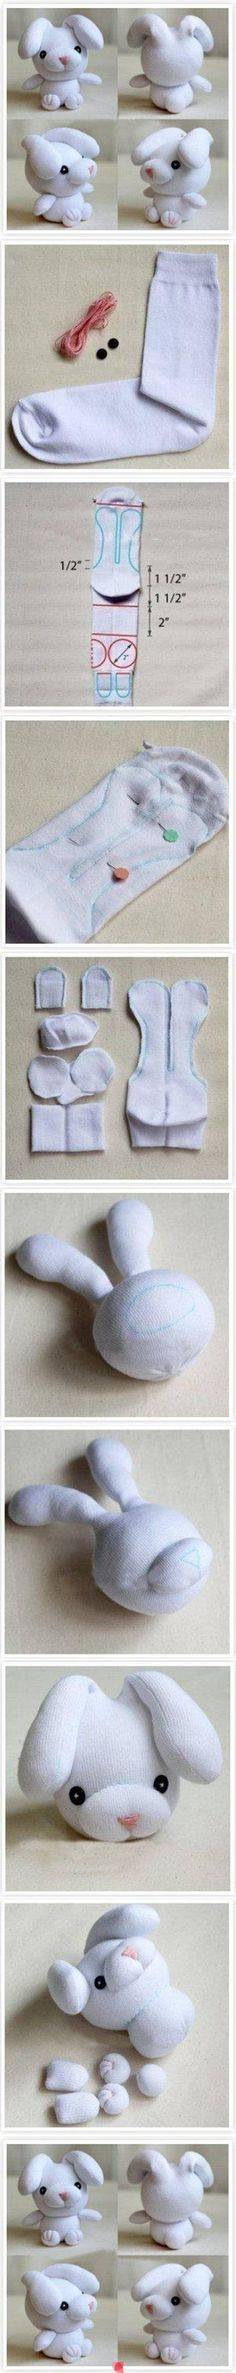 Sewing Animals Projects DIY Bunny peluches de conejito - Learn how to sew by taking things one step at a time. You'll find everything you need in this article for sewing newbies. Sock Crafts, Cute Crafts, Fabric Crafts, Creative Crafts, Sewing Toys, Sewing Crafts, Sewing Projects, Diy Projects, Craft Tutorials